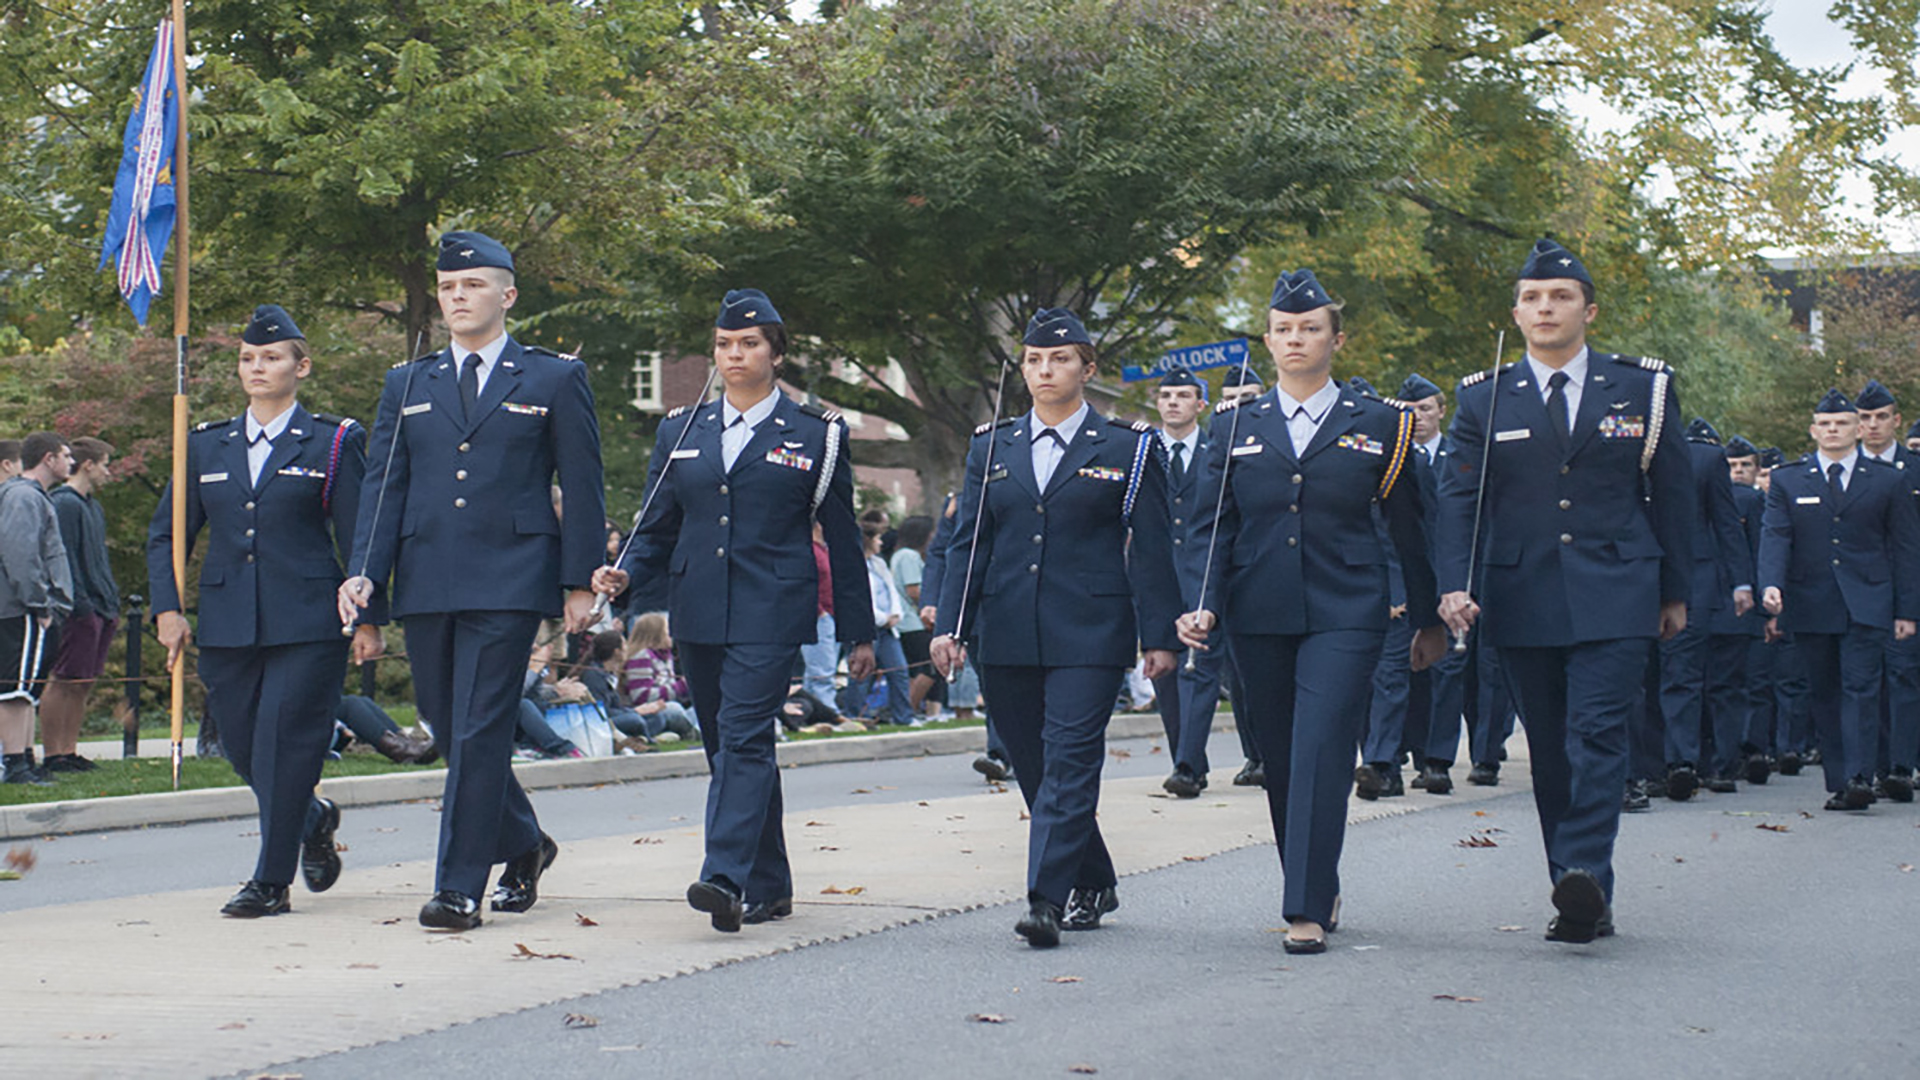 Air Force ROTC cadets marching in parade